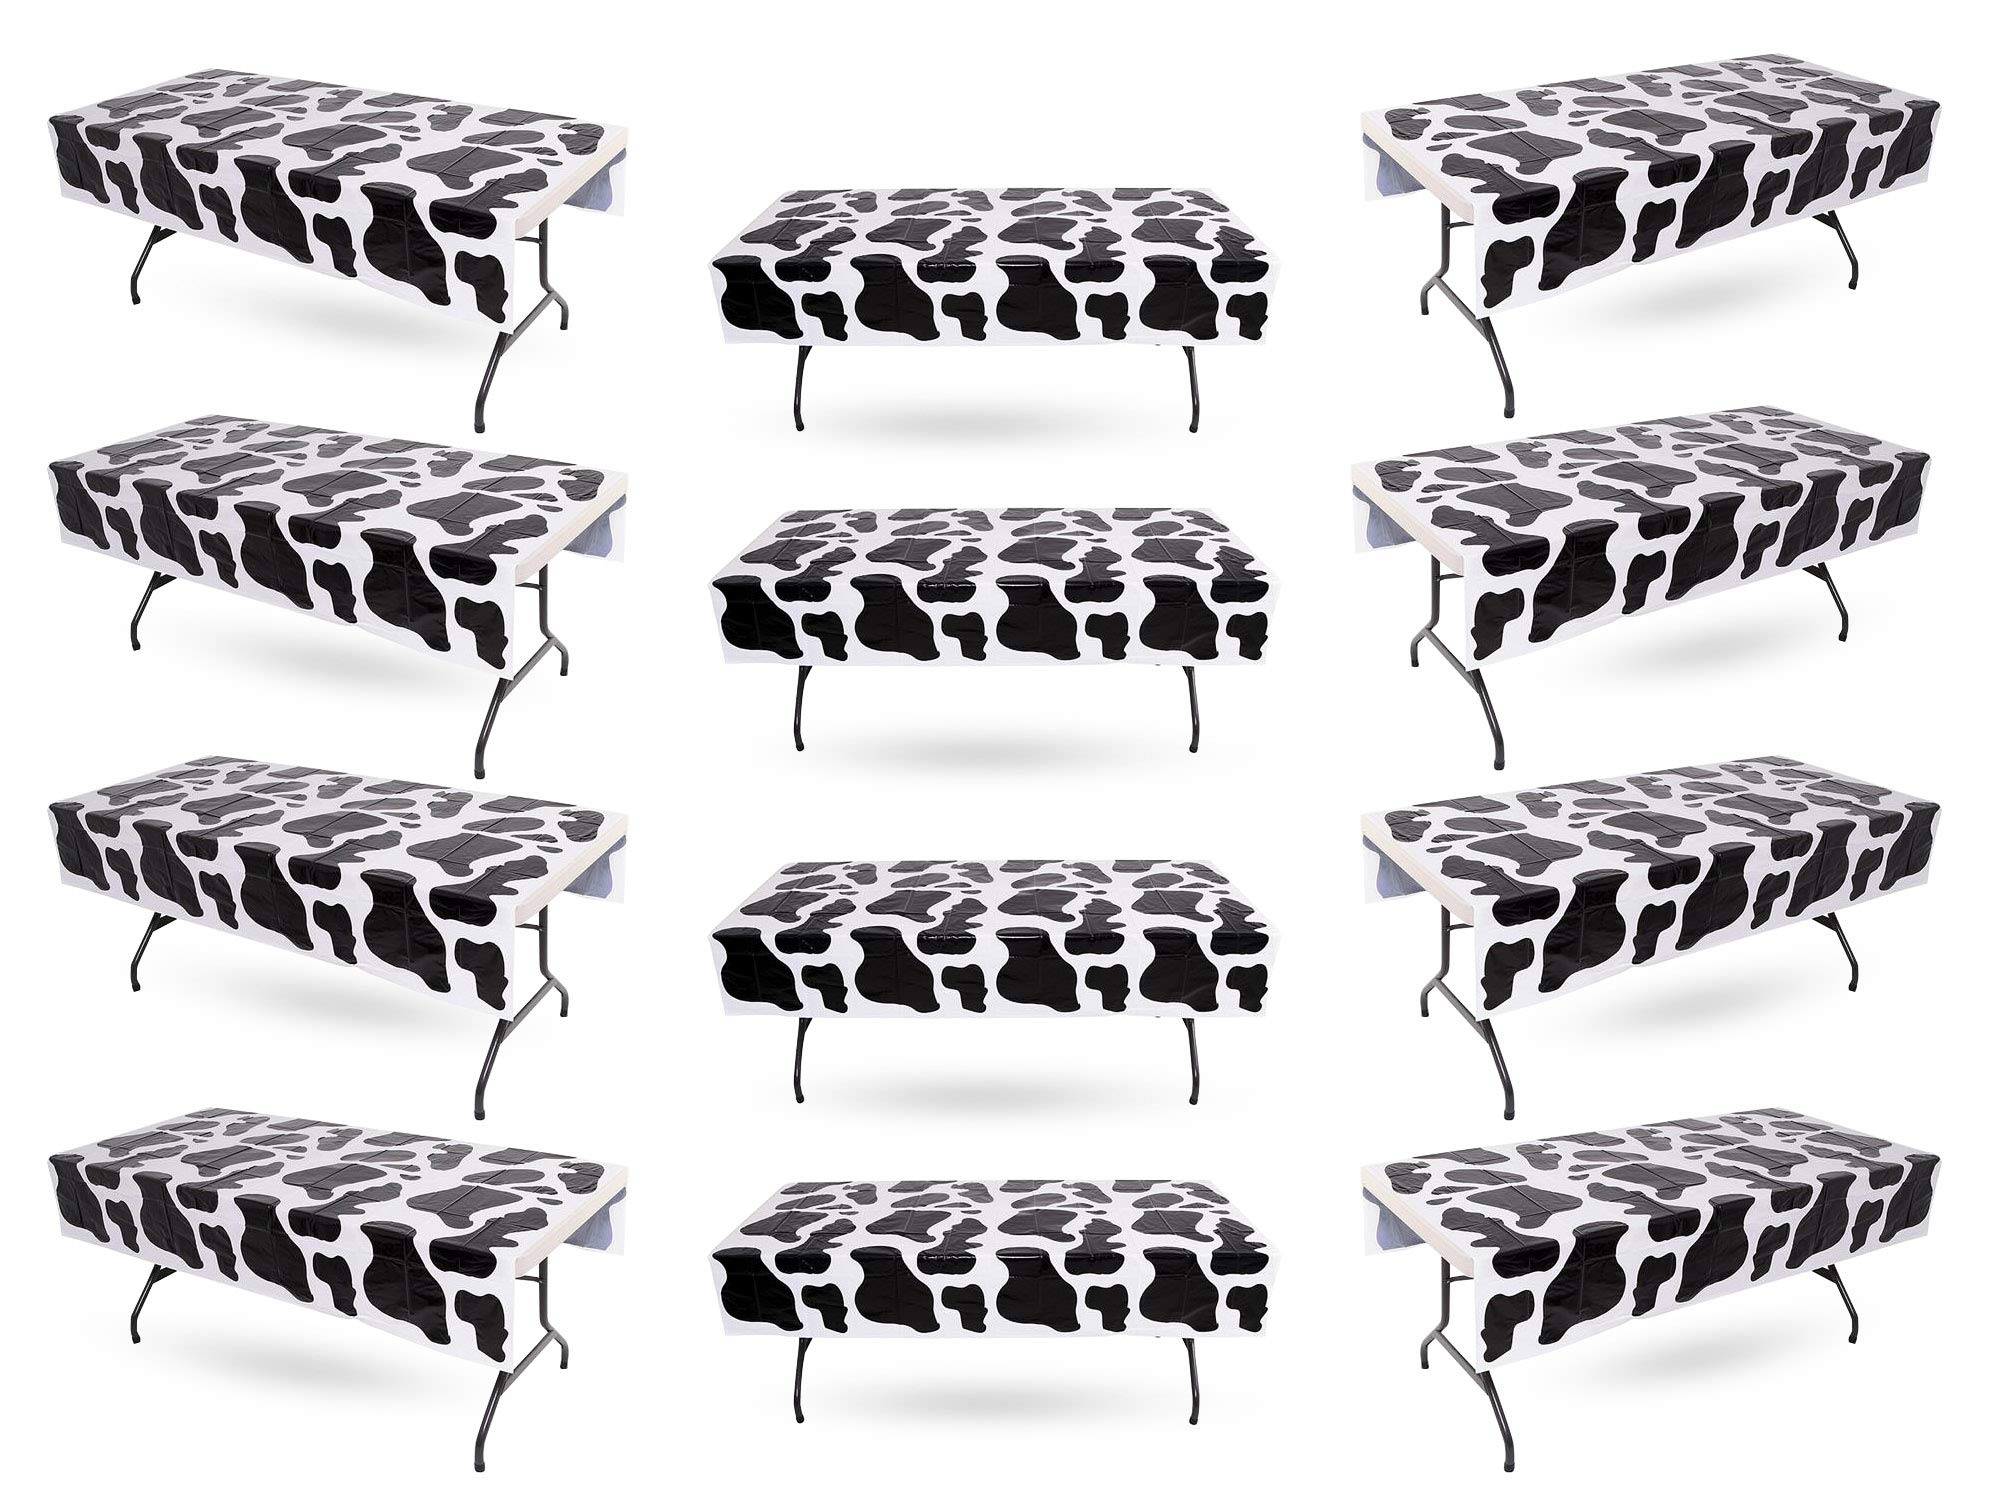 Cow Print Tablecloth Bulk Pack of 12 Plastic Table Covers - Birthday Party, Carnival, Farm Animal, Party Supplies, 54'' x 72'' By 4E's Novelty